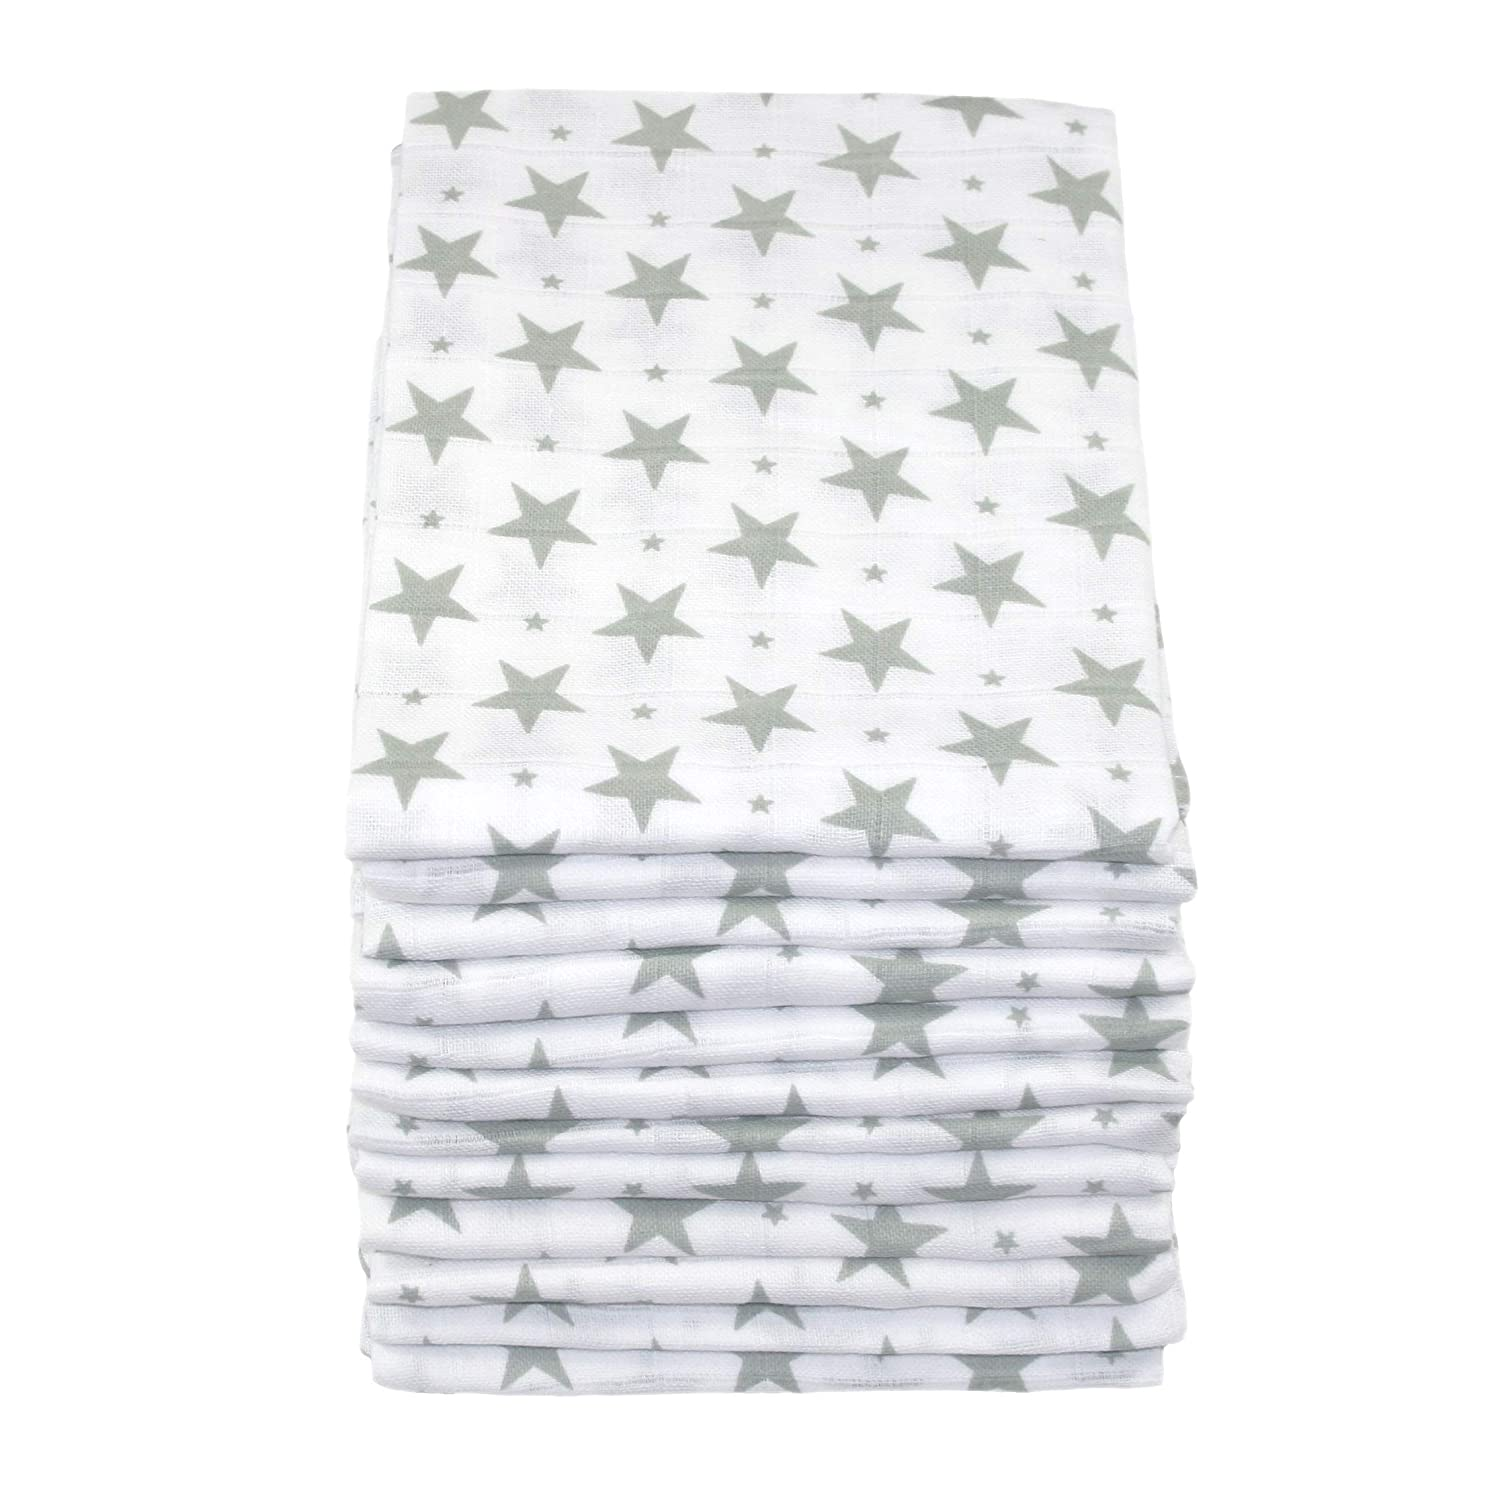 Muslinz Premium High Quality Baby Muslin Squares Grey Star Pack of 12